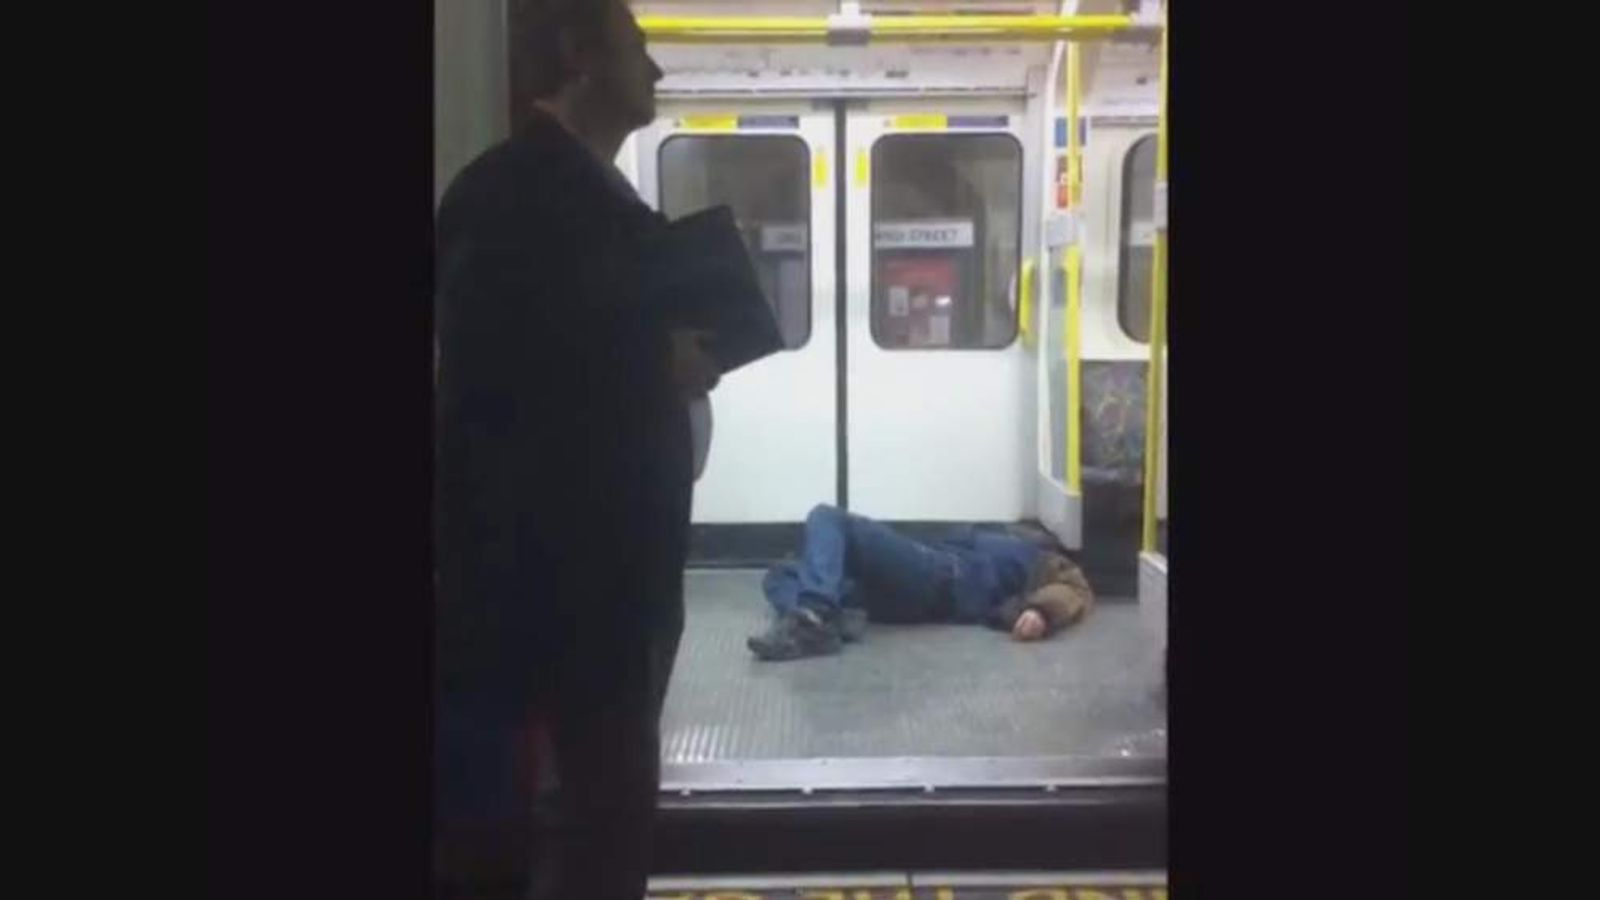 A man lies collapsed on the floor of the tube